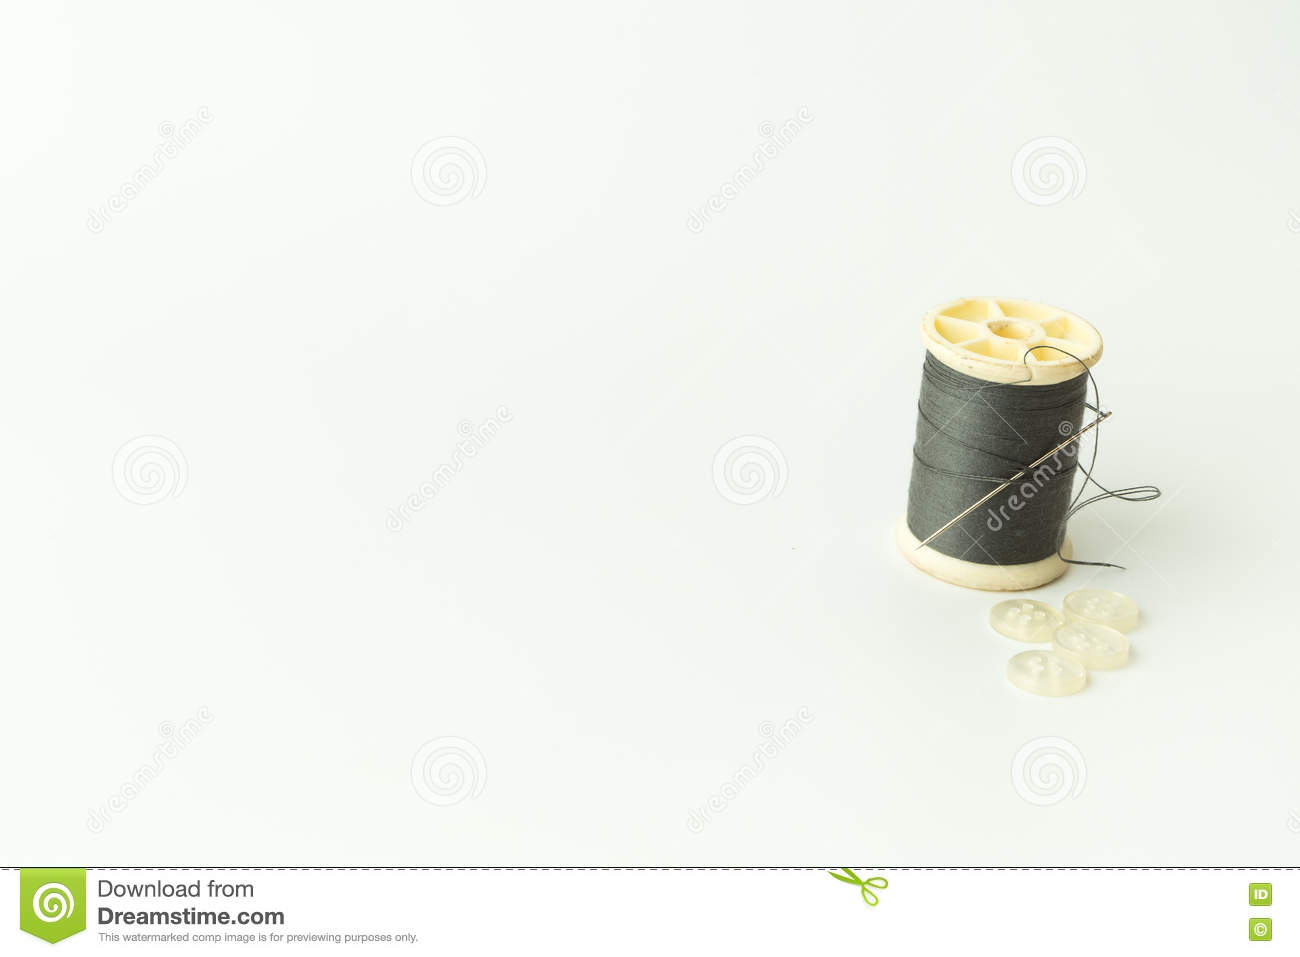 Close up of sewing items,Spool of thread, needle and button